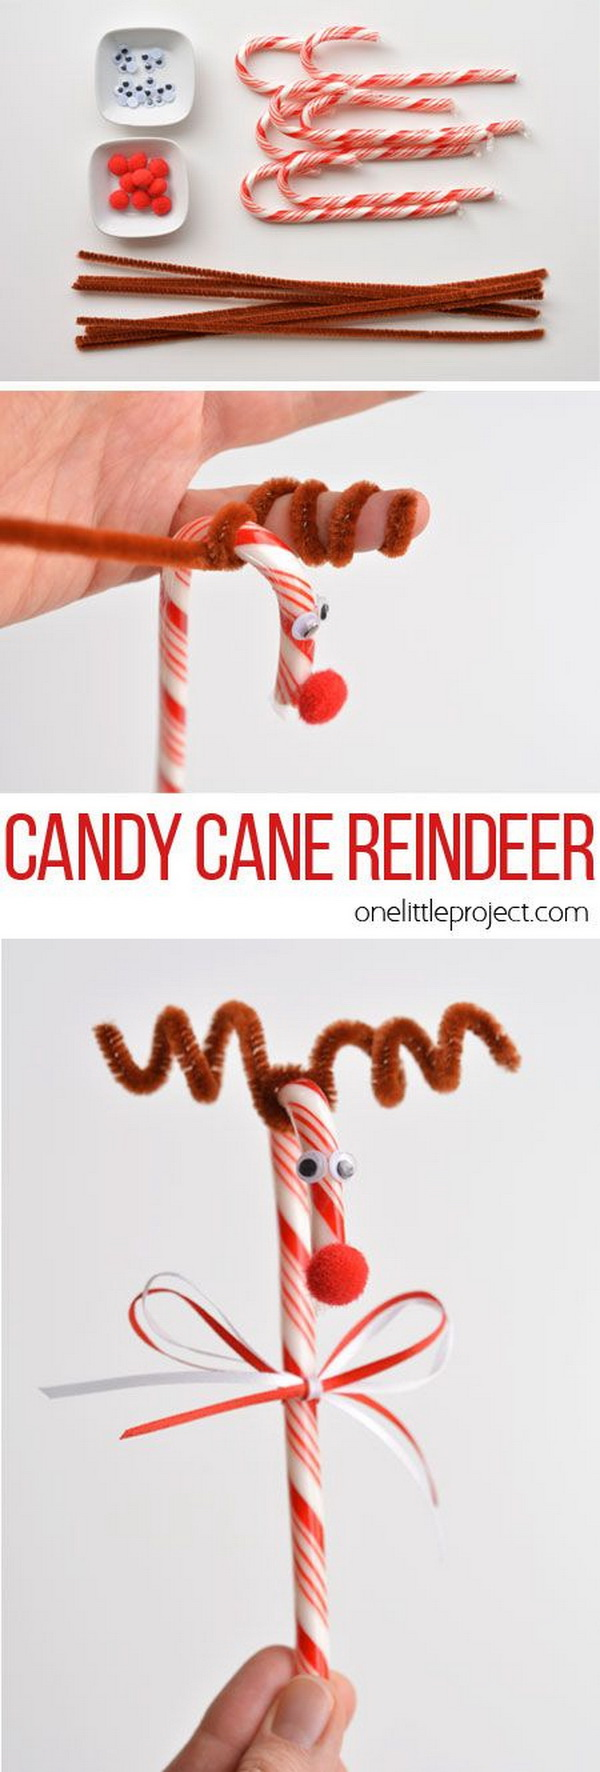 Candy Cane Reindeer. Easy and Fun DIY Christmas crafts for You and Your Kids to Have Fun.